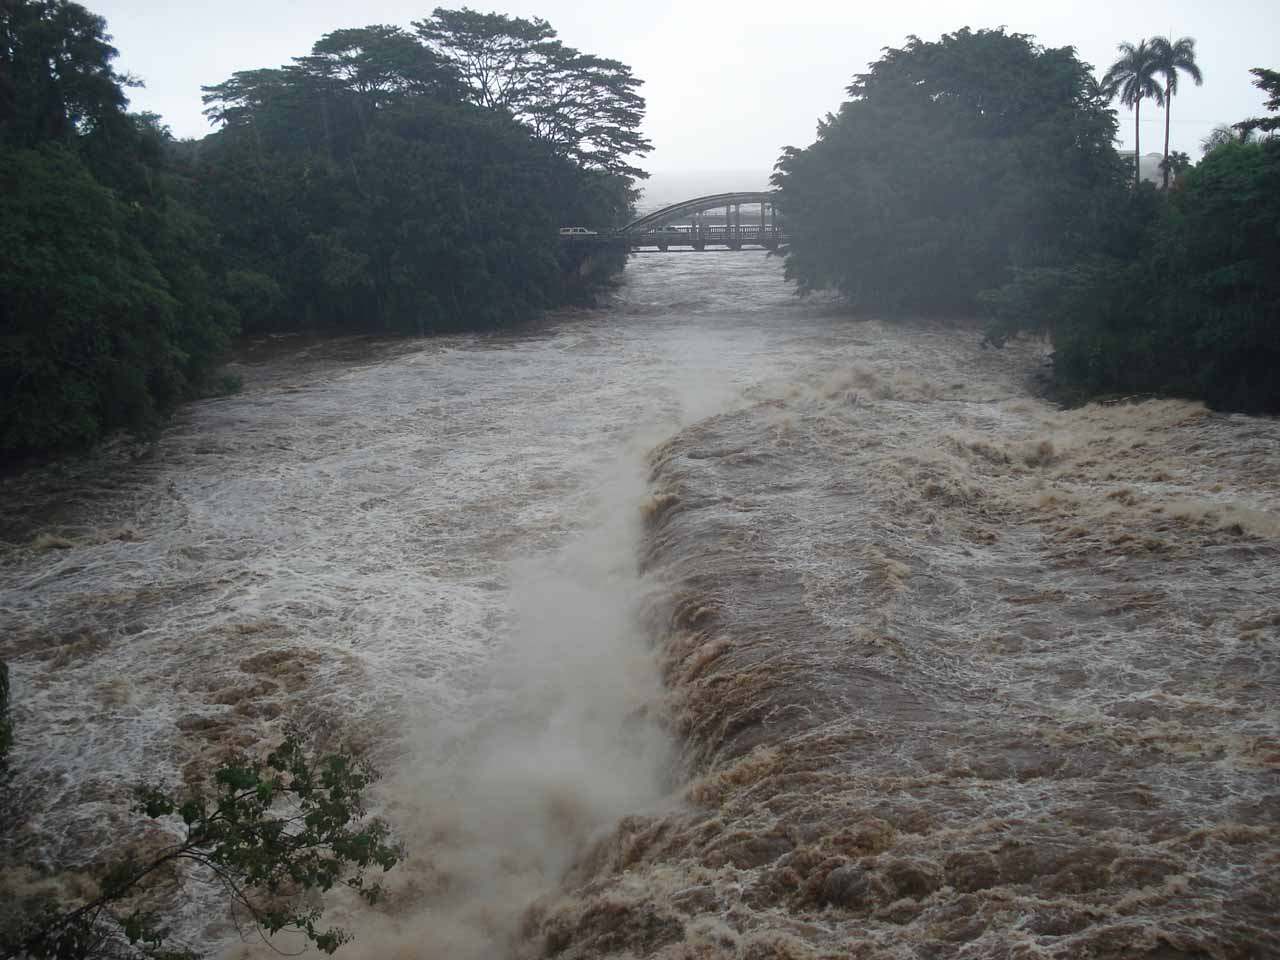 Further downstream of Rainbow Falls in Hilo, flooding was severe anywhere near the Wailuku River or any other drainage